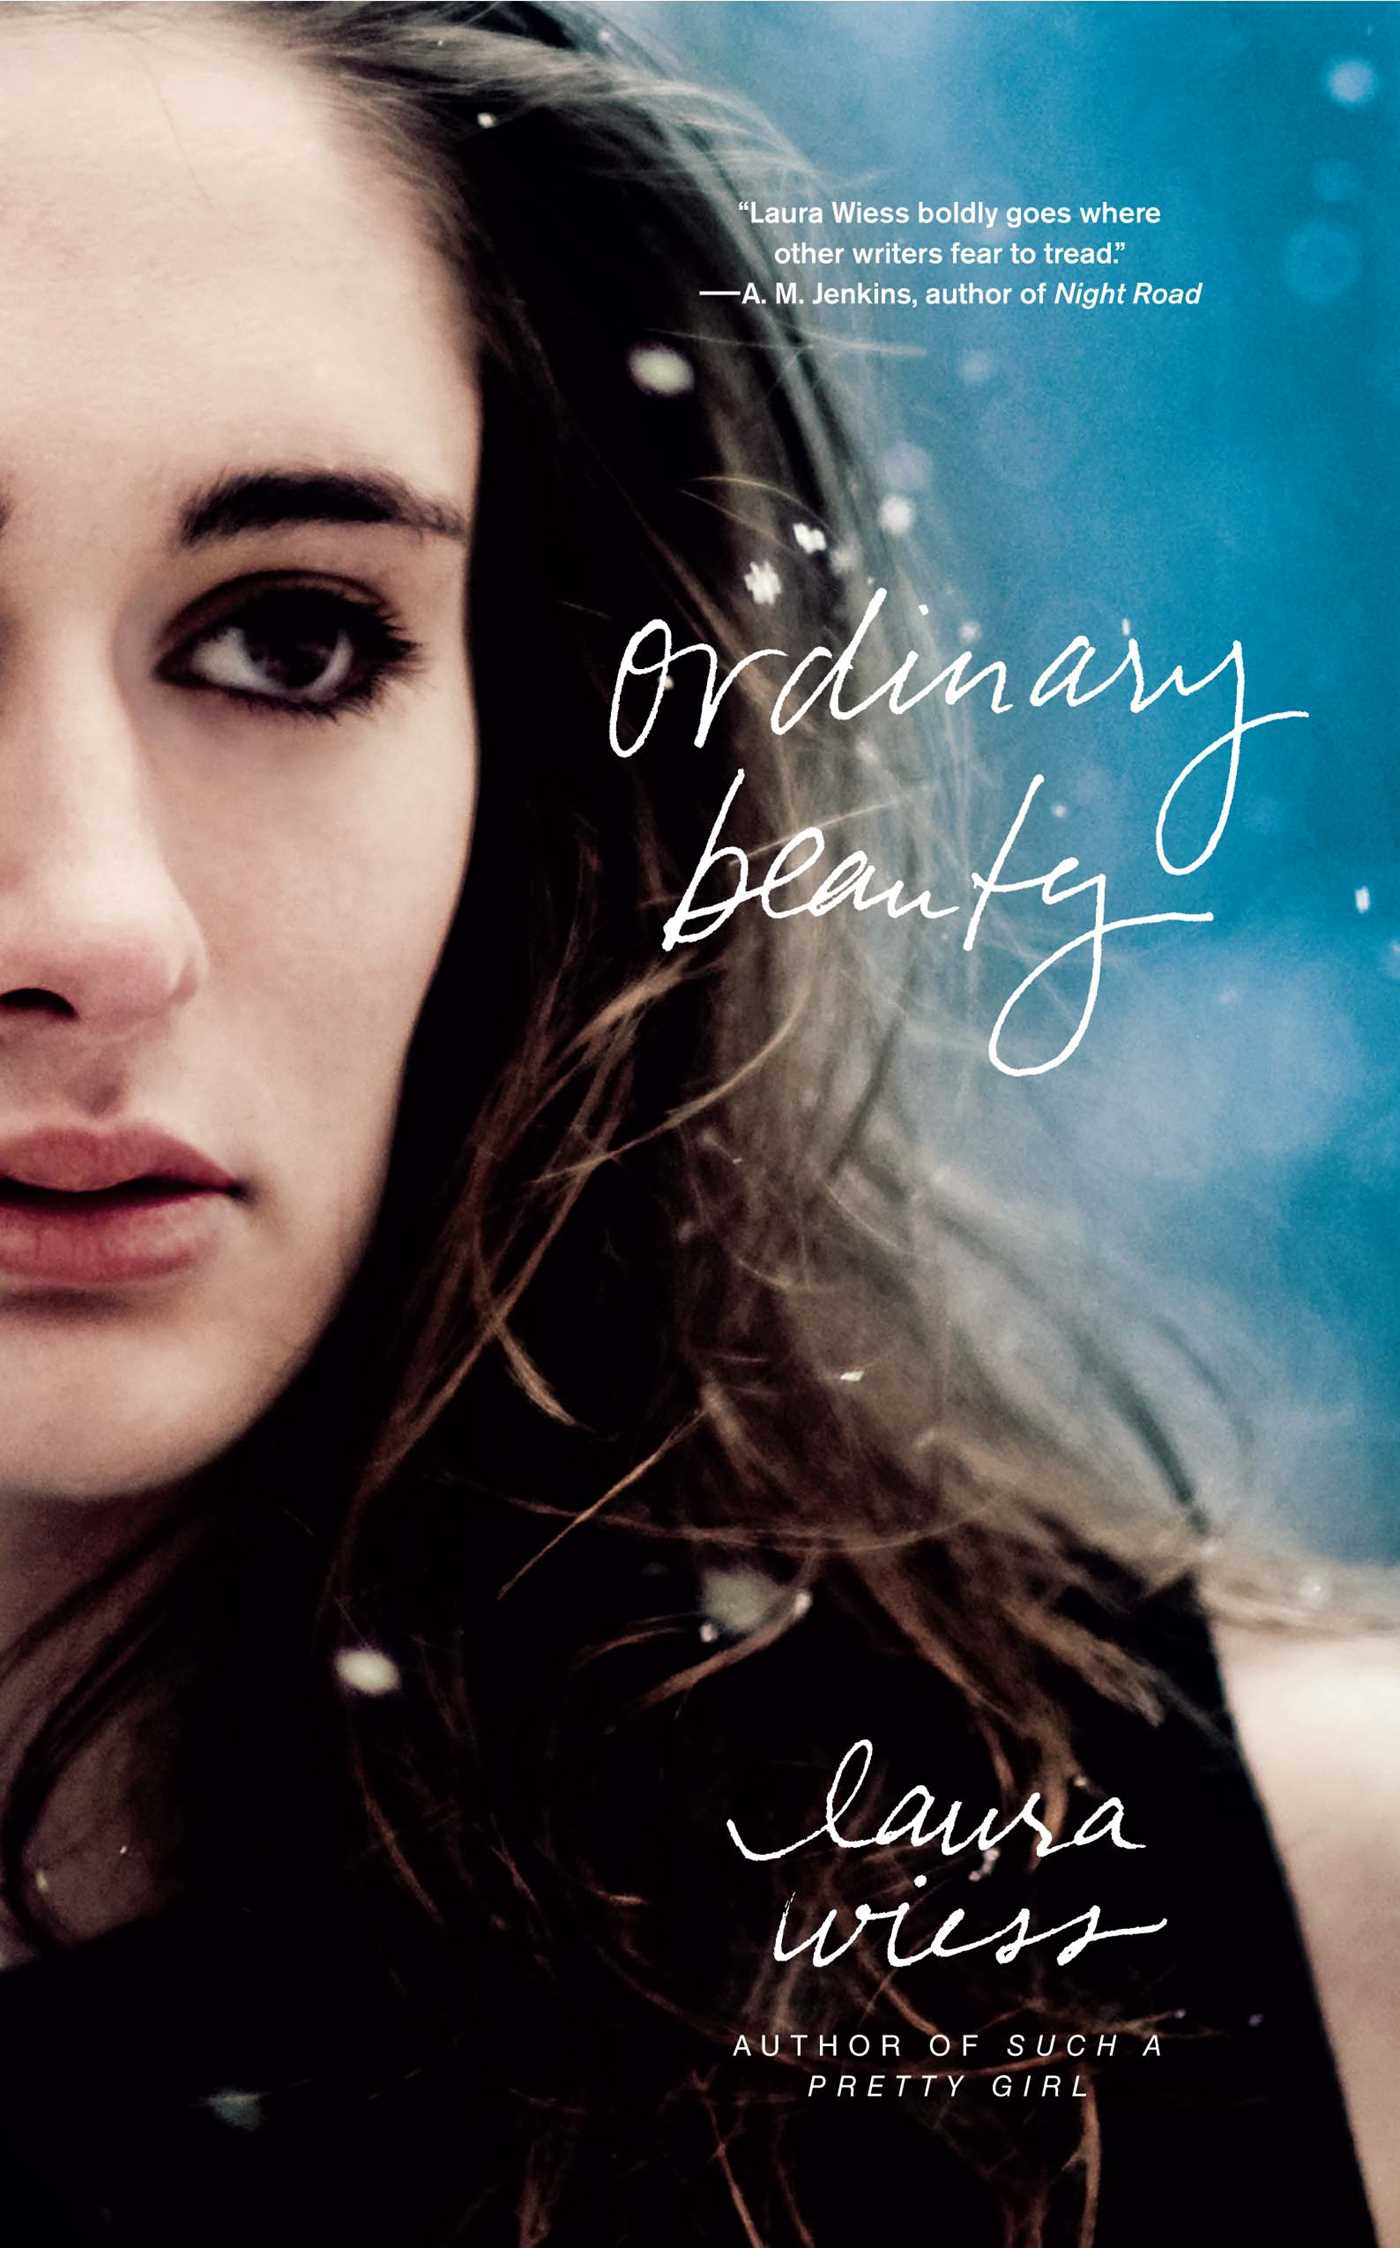 Ordinary-beauty-9781439193969_hr